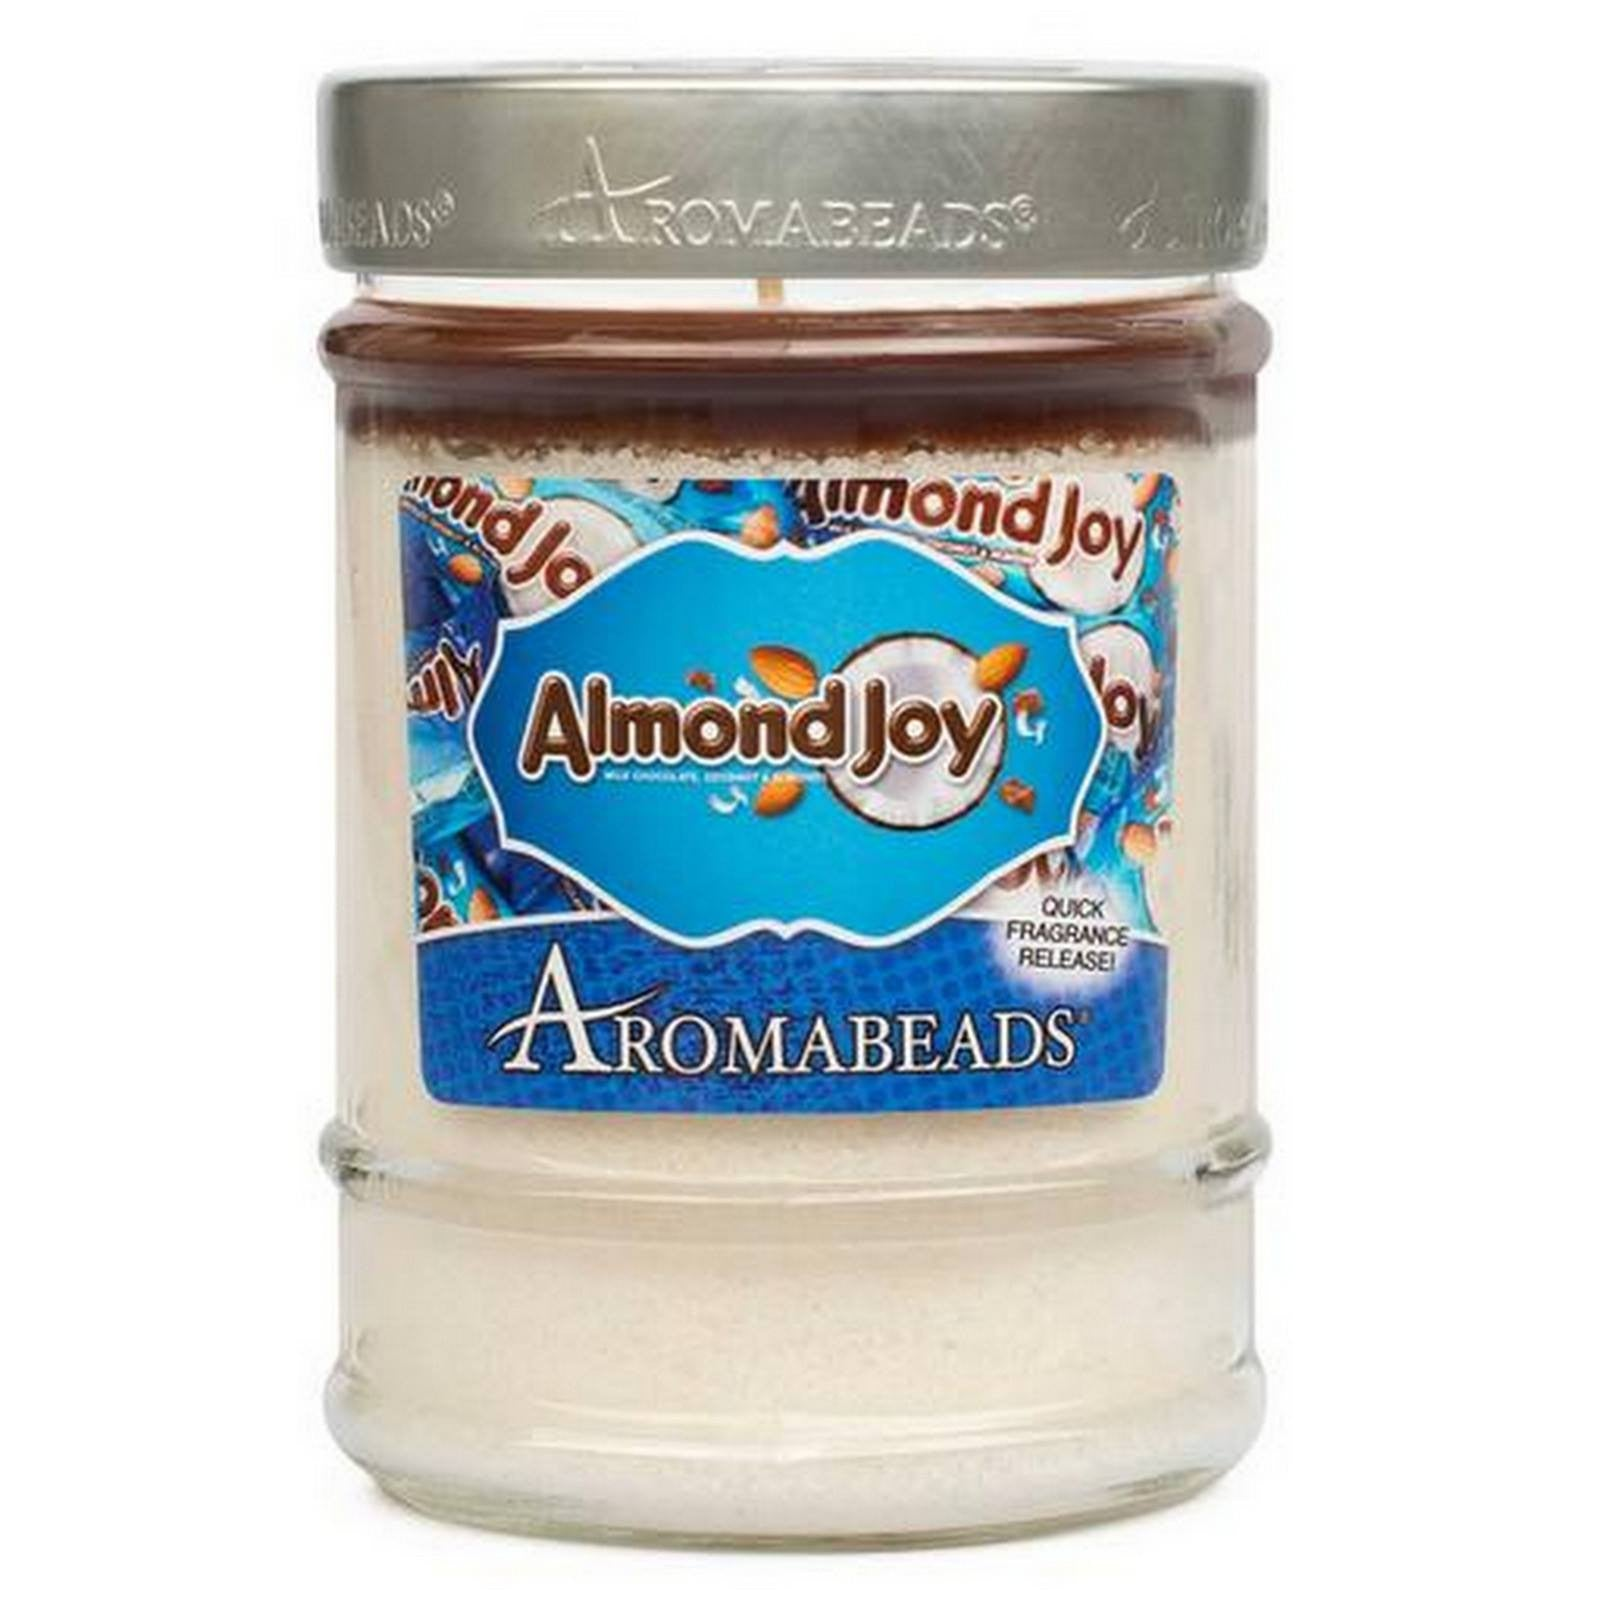 Aromabeads HERSHEY'S Almond Joy Scented Candle Aromabeads Candlemart.com $ 9.99